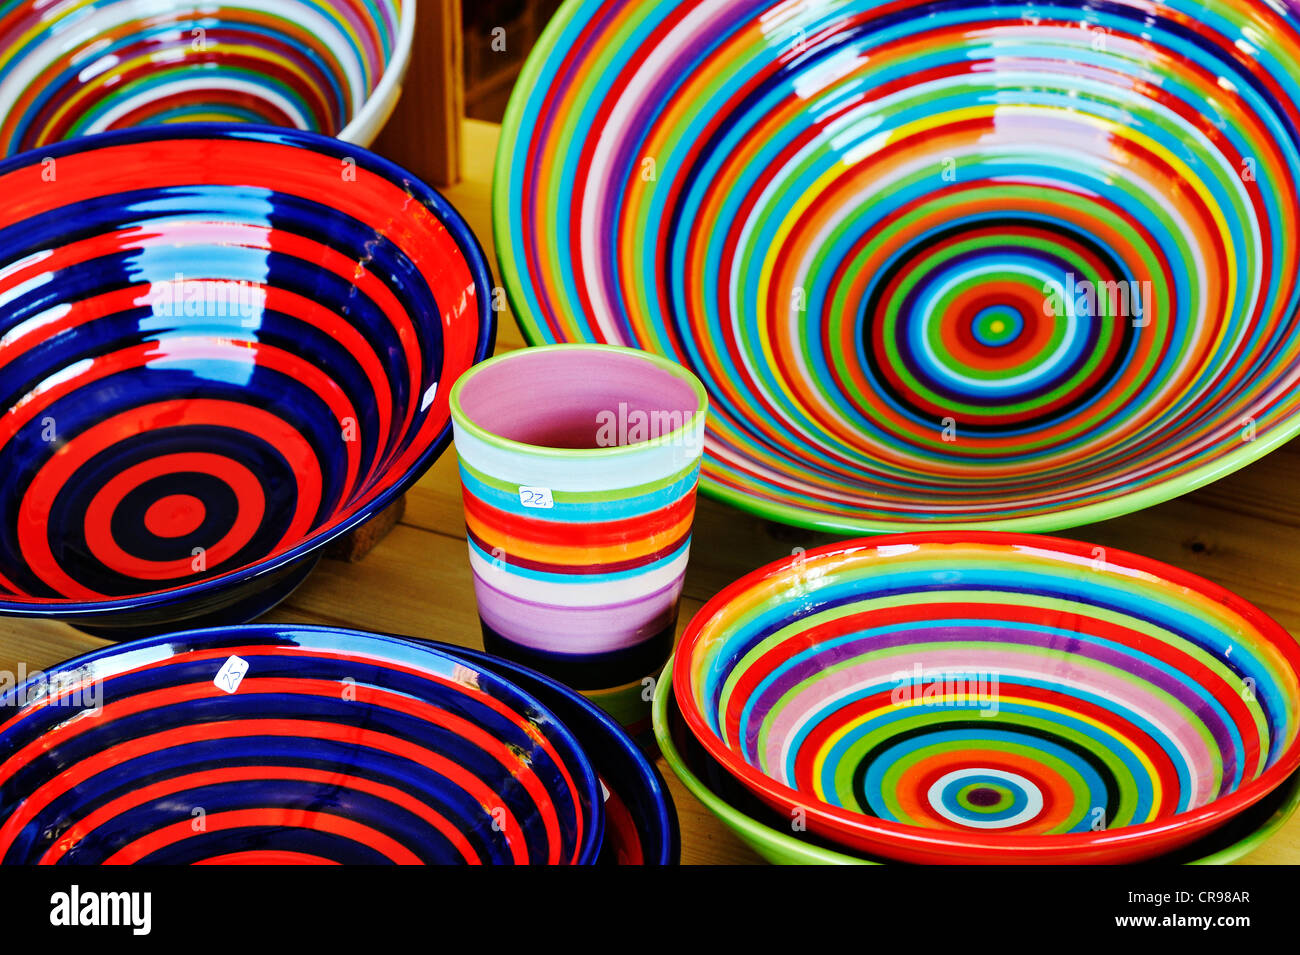 Colourful bowls and cups, Auer Dult market, Munich, Bavaria, Germany, Europe - Stock Image